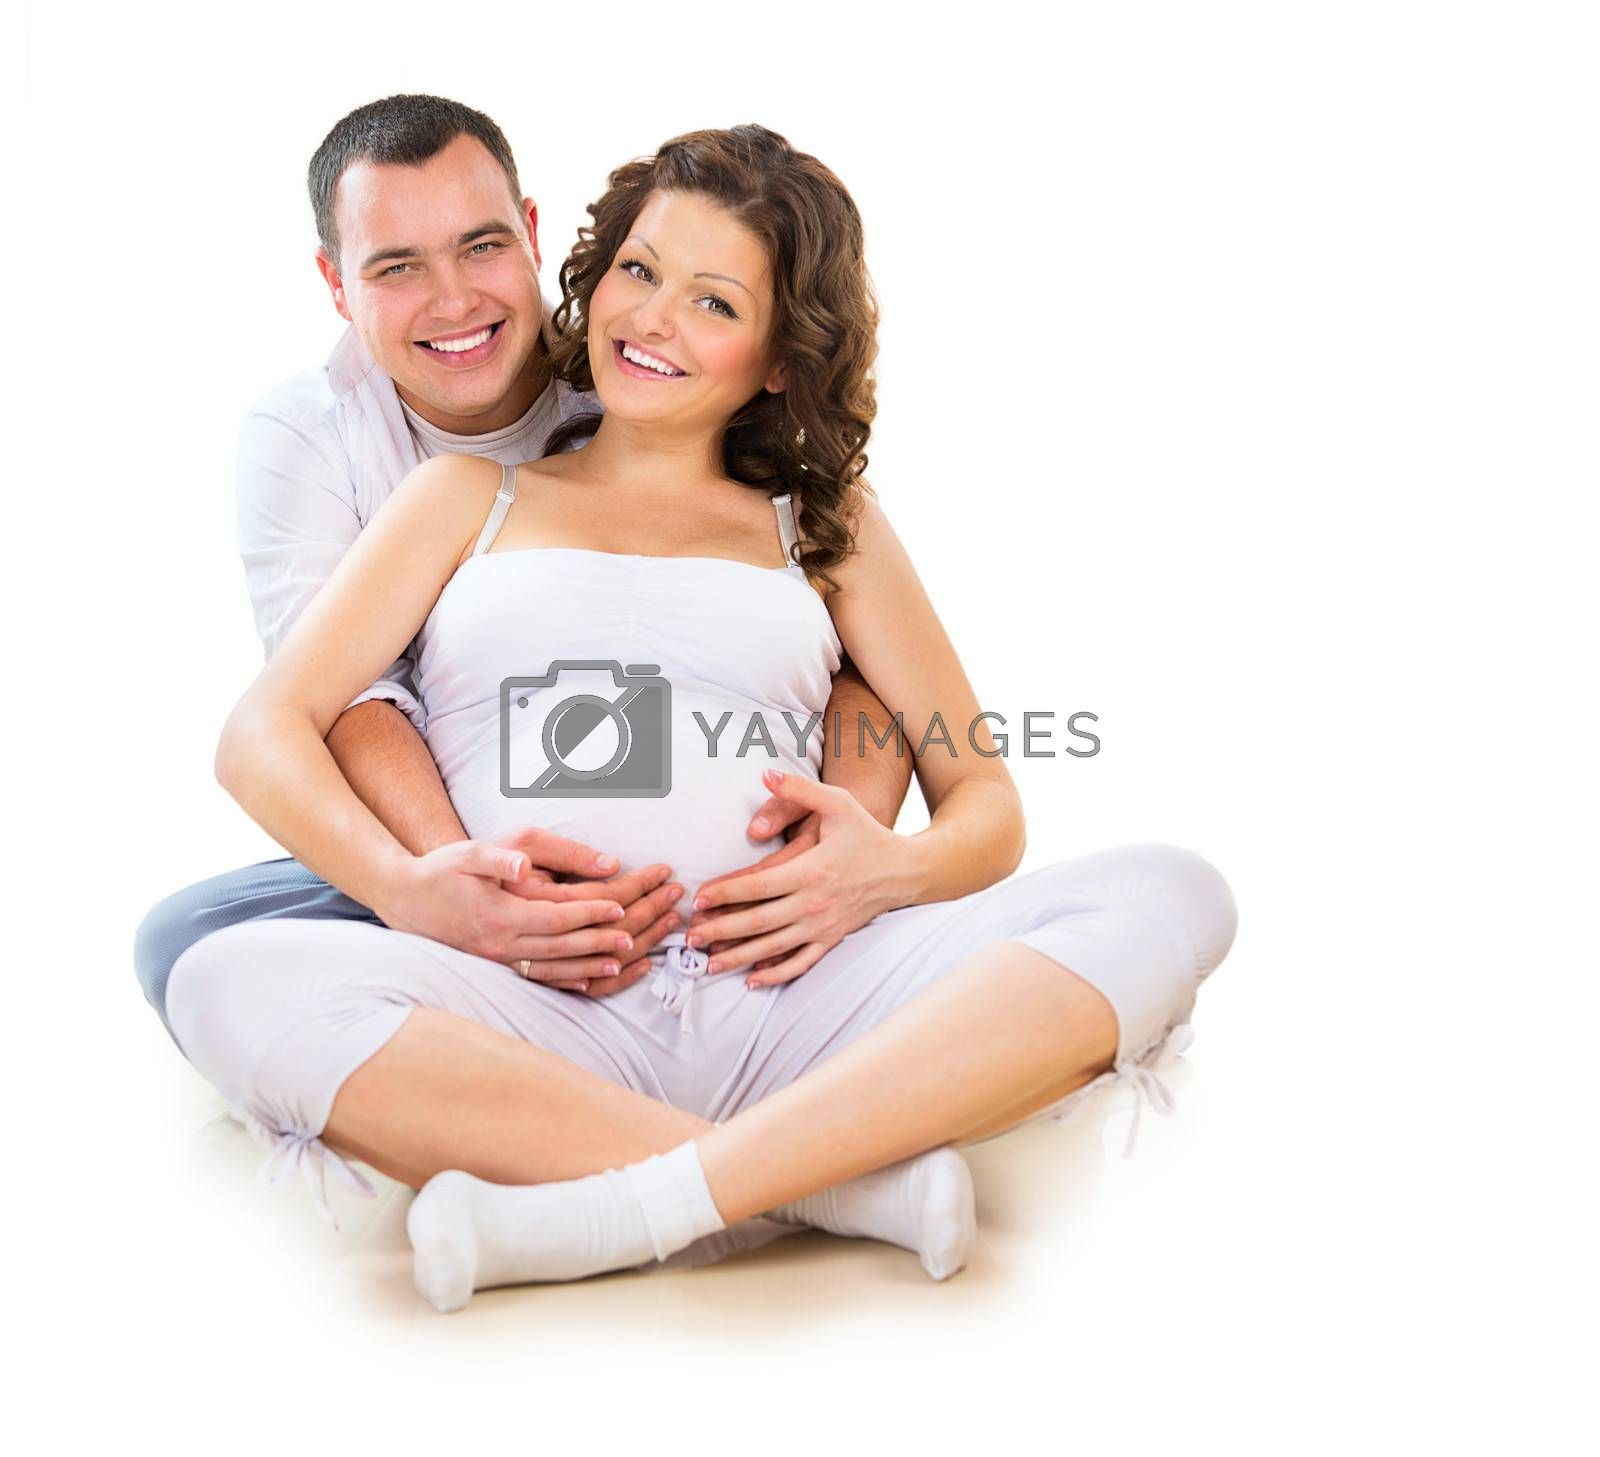 Happy Couple Expecting Baby. Isolated on White Background